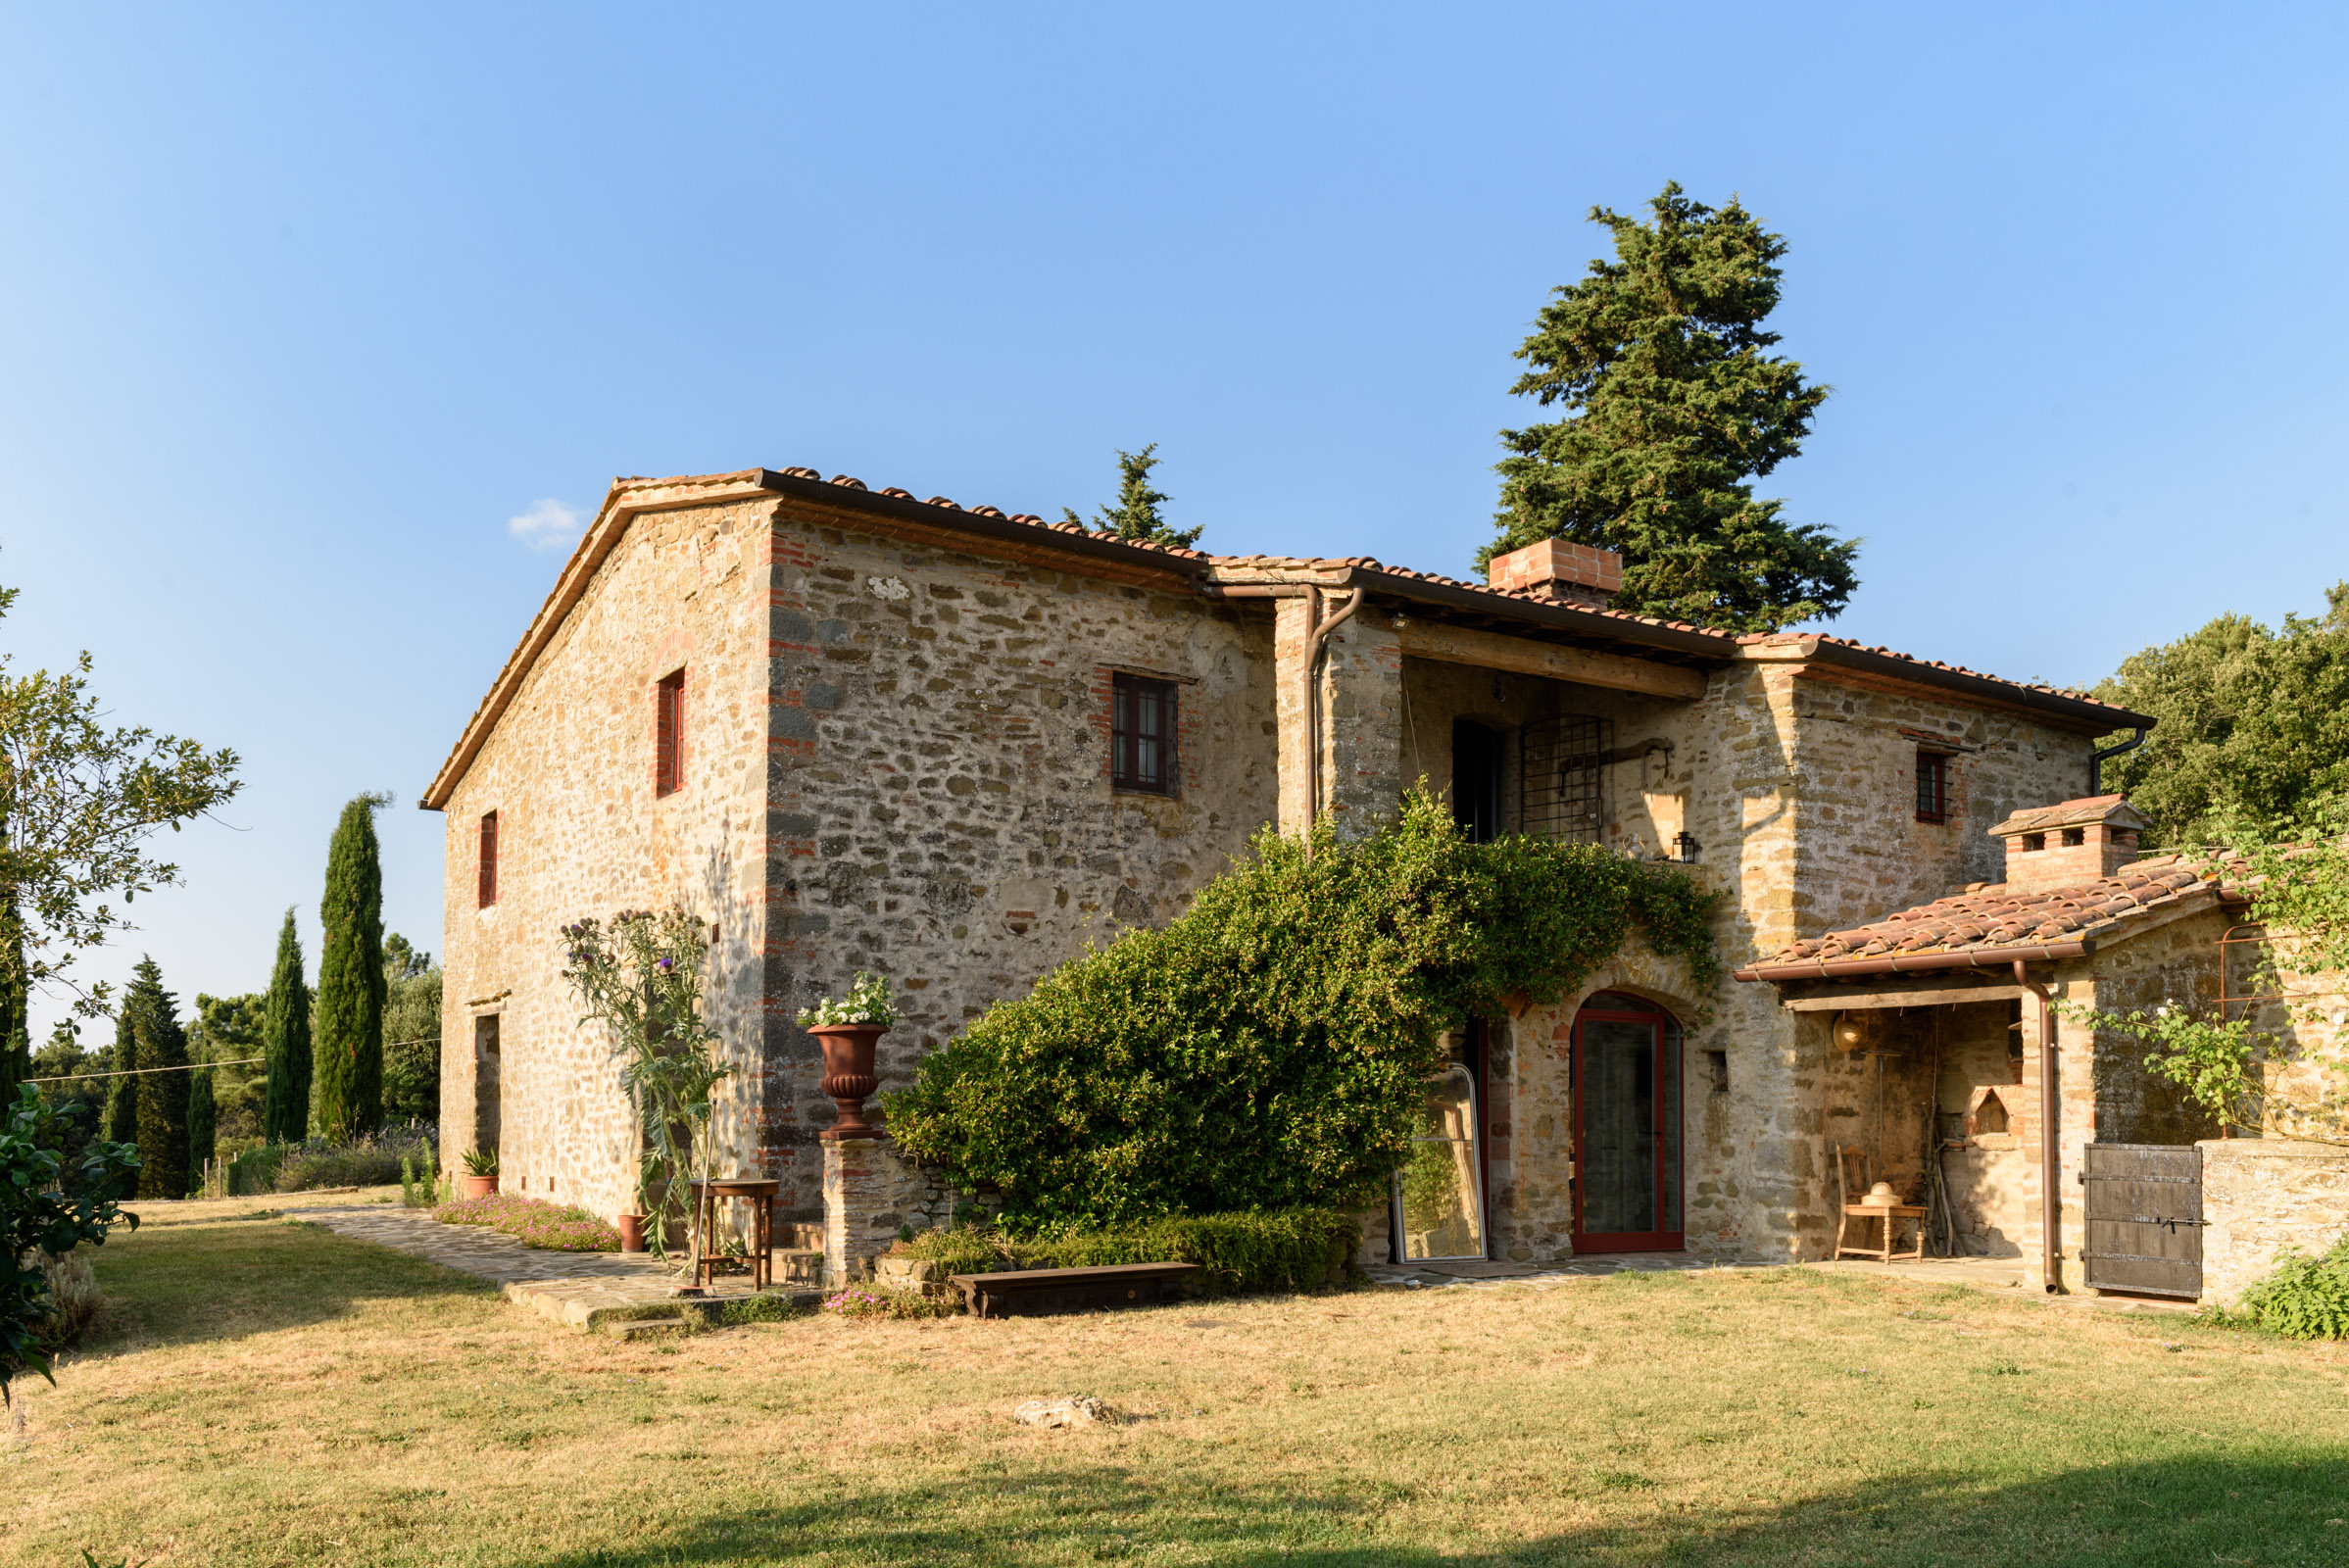 Single Family Home for Sale at Siena view - Country retreat Chianti hills Monte San Savino, Arezzo Italy